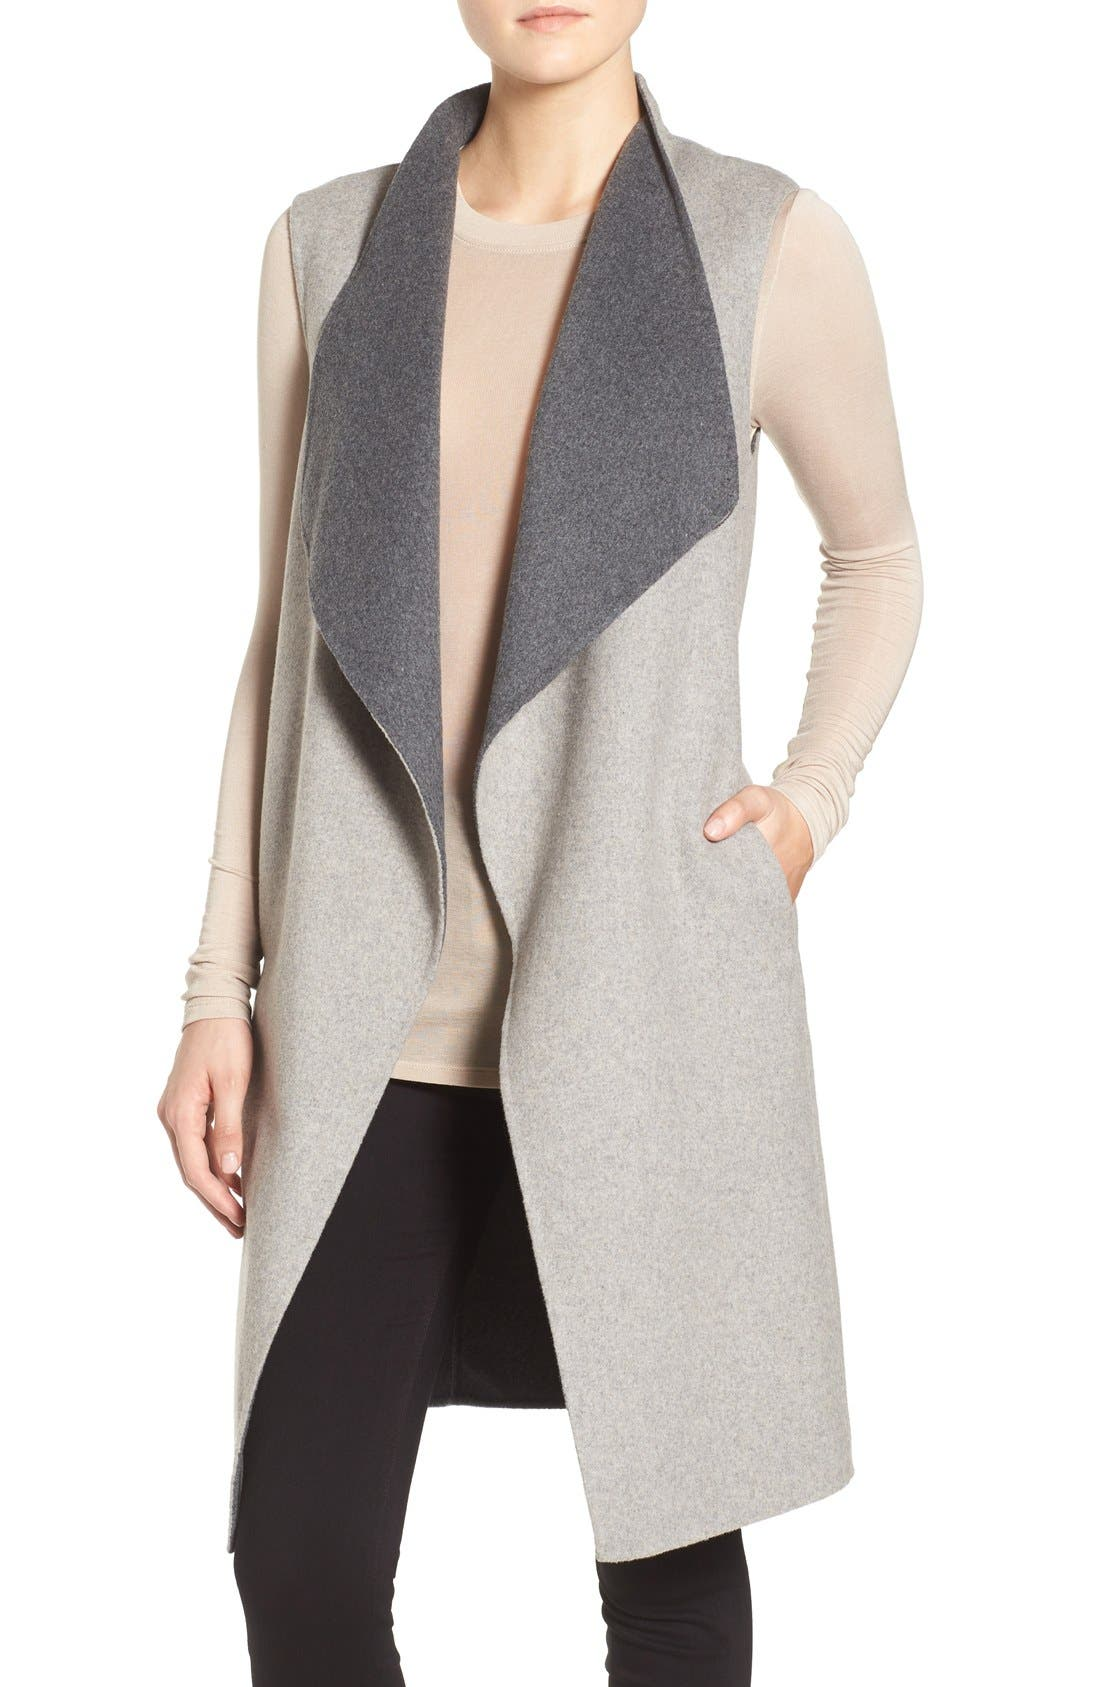 Main Image - Soia & Kyo Double-Face Wool Blend Vest